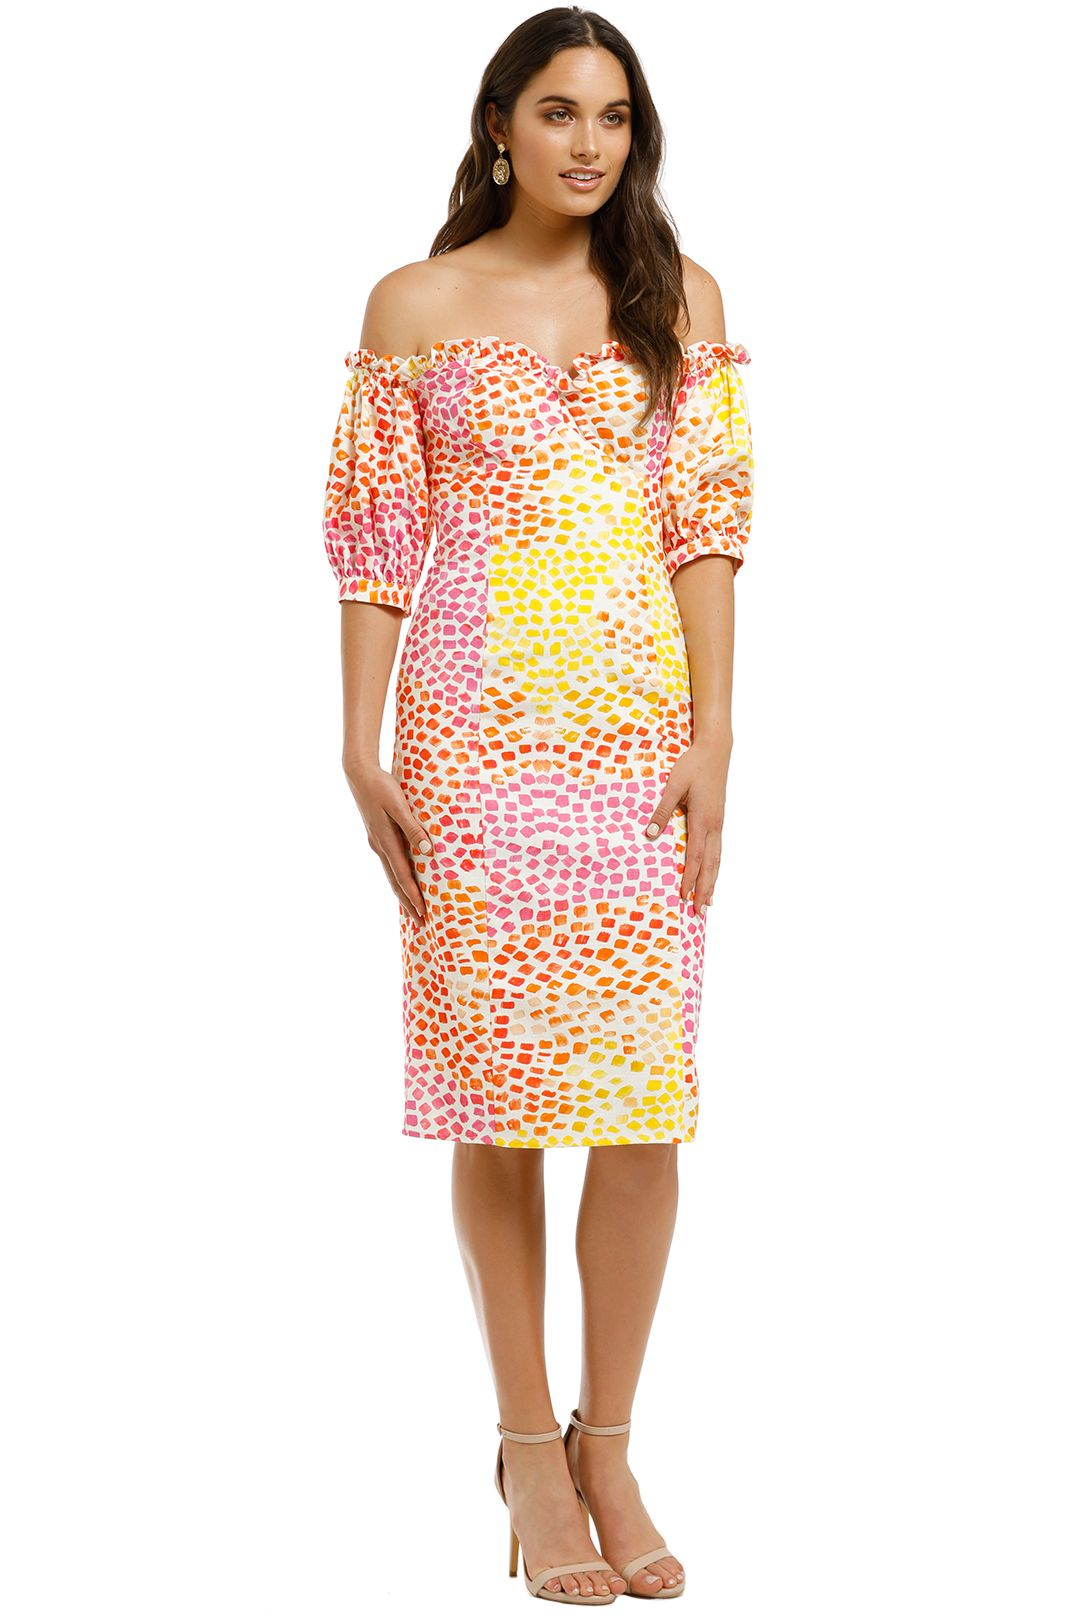 Ministry-of-Style-Gazania-Off-The-Shoulder-Dress-Side